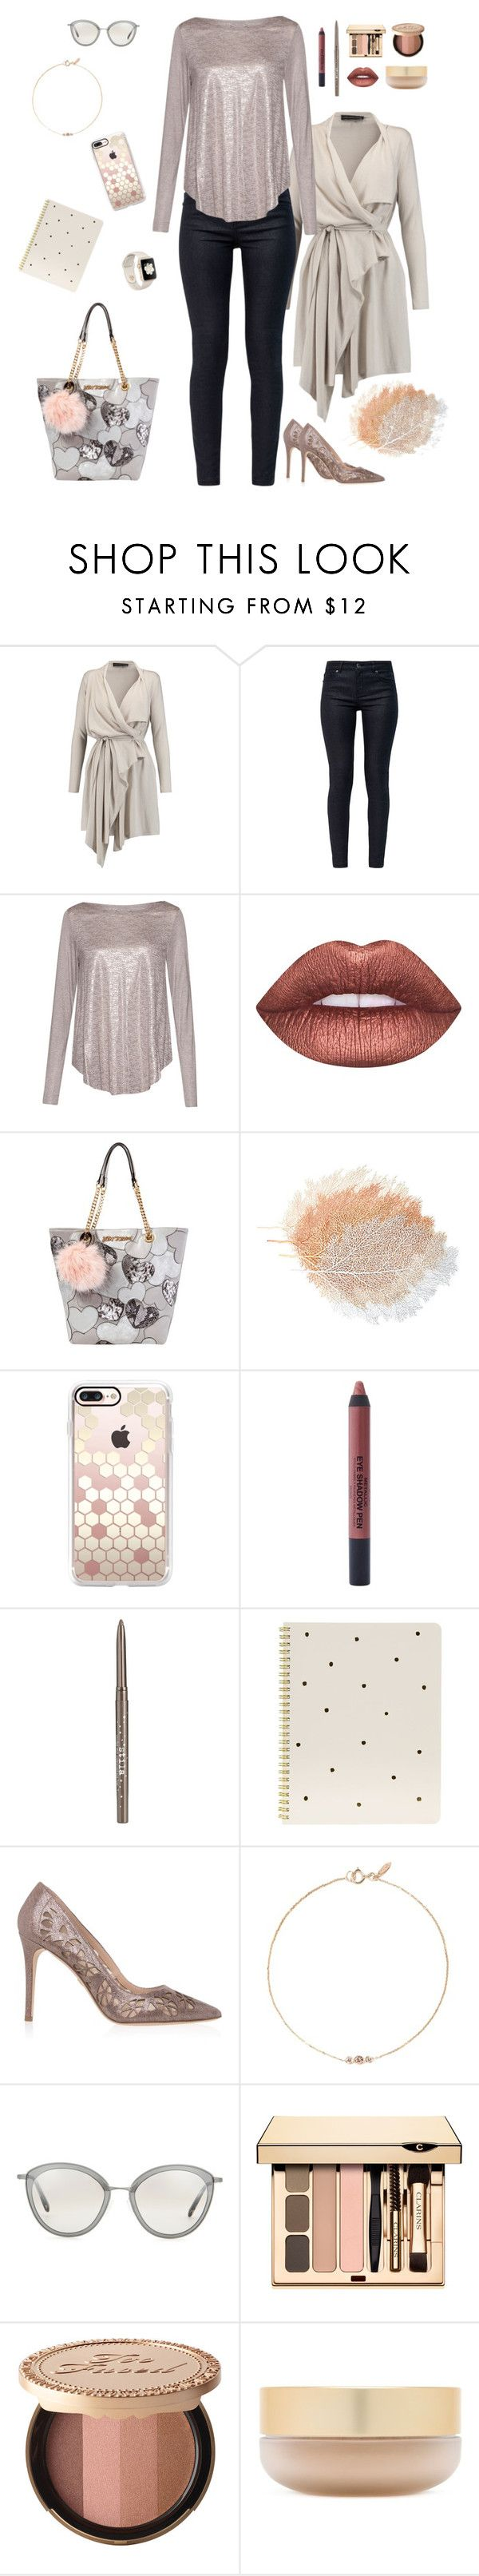 """Champagne Metallic"" by runsonblackcoffee on Polyvore featuring Maria Grachvogel, Ted Baker, Great Plains, Lime Crime, Betsey Johnson, Casetify, Stargazer, Stila, Sugar Paper and Elie Saab"